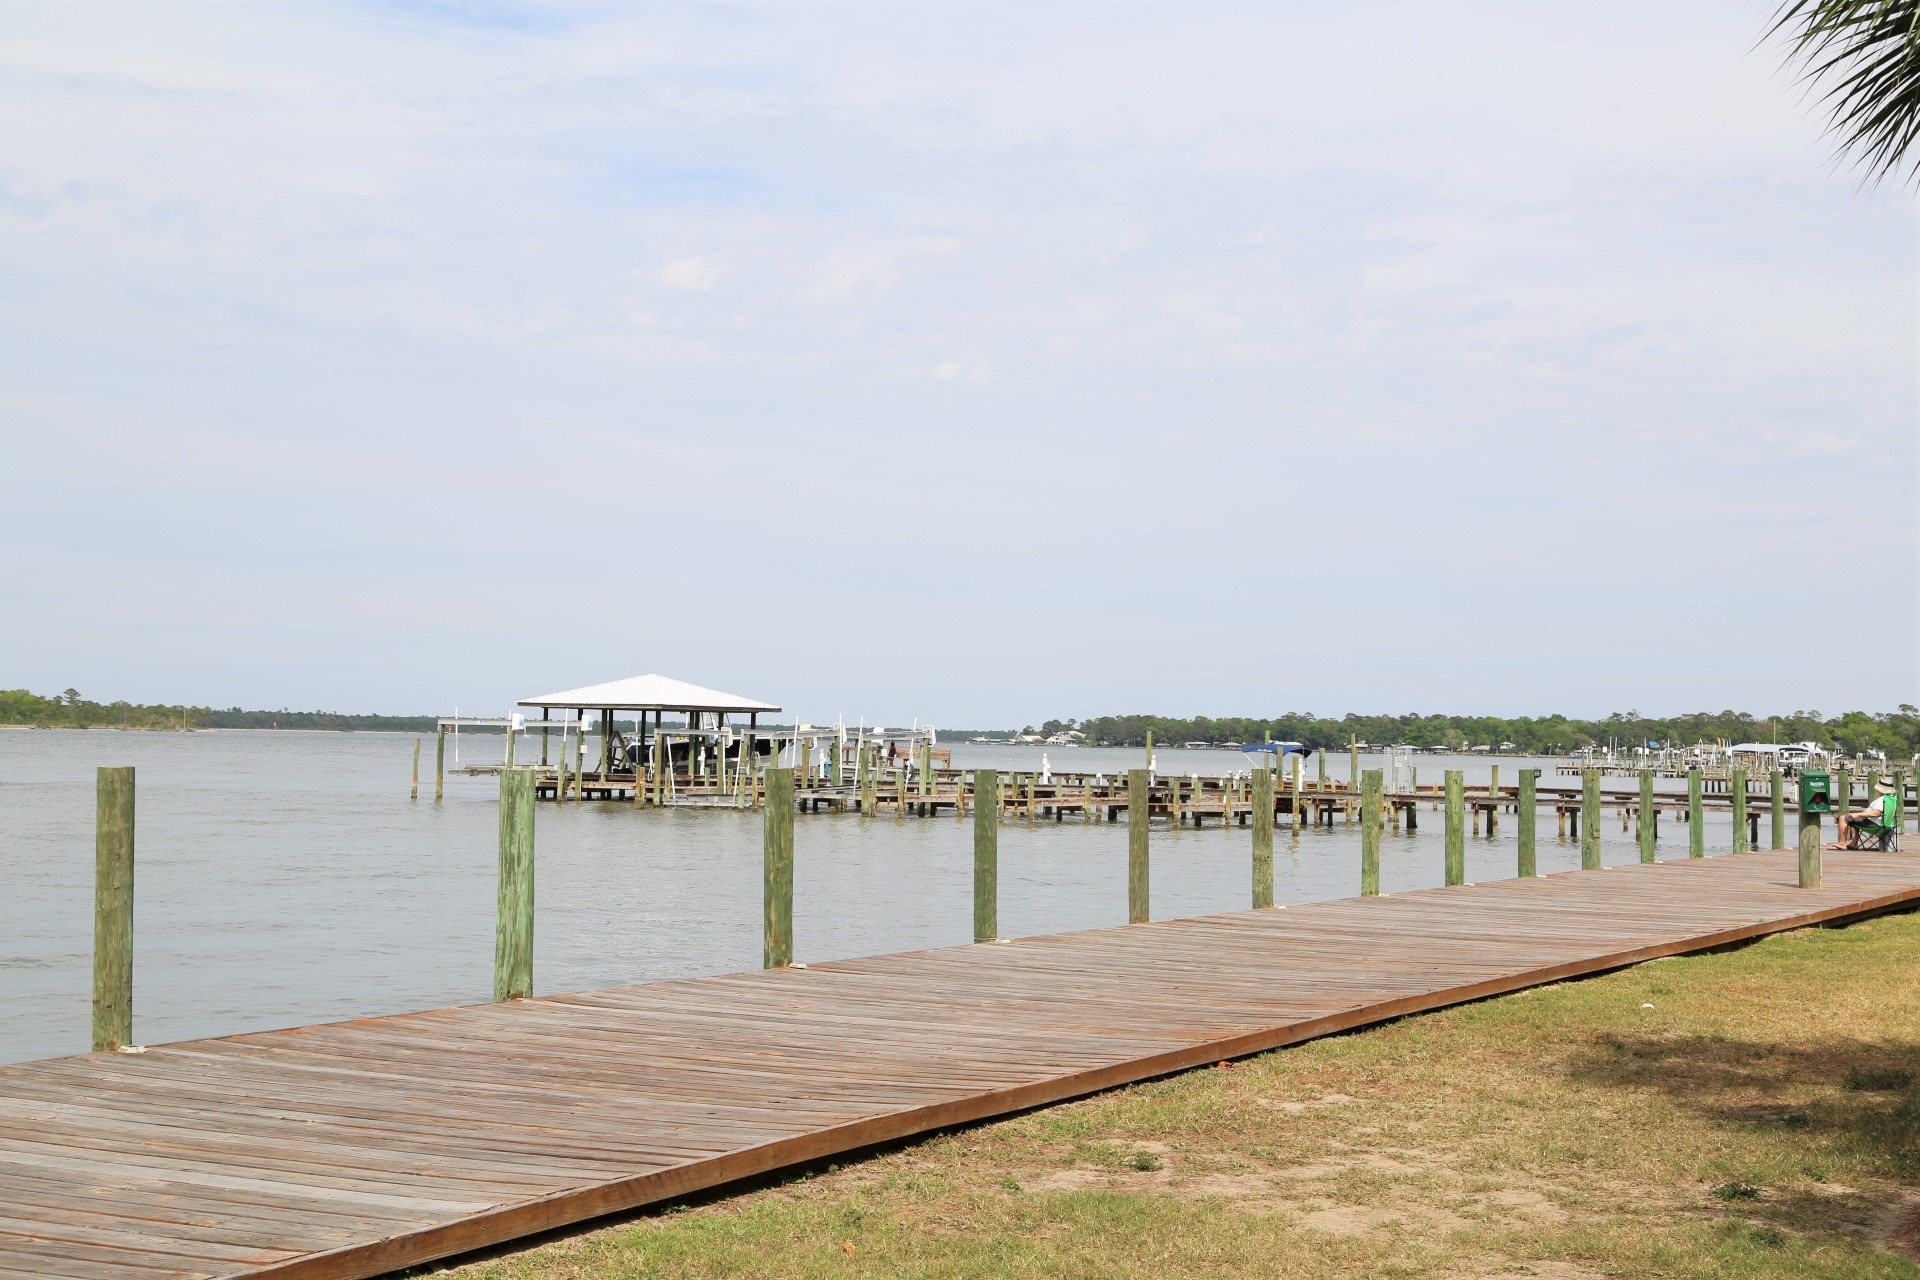 Boardwalk to the fishing pier/boat dock.